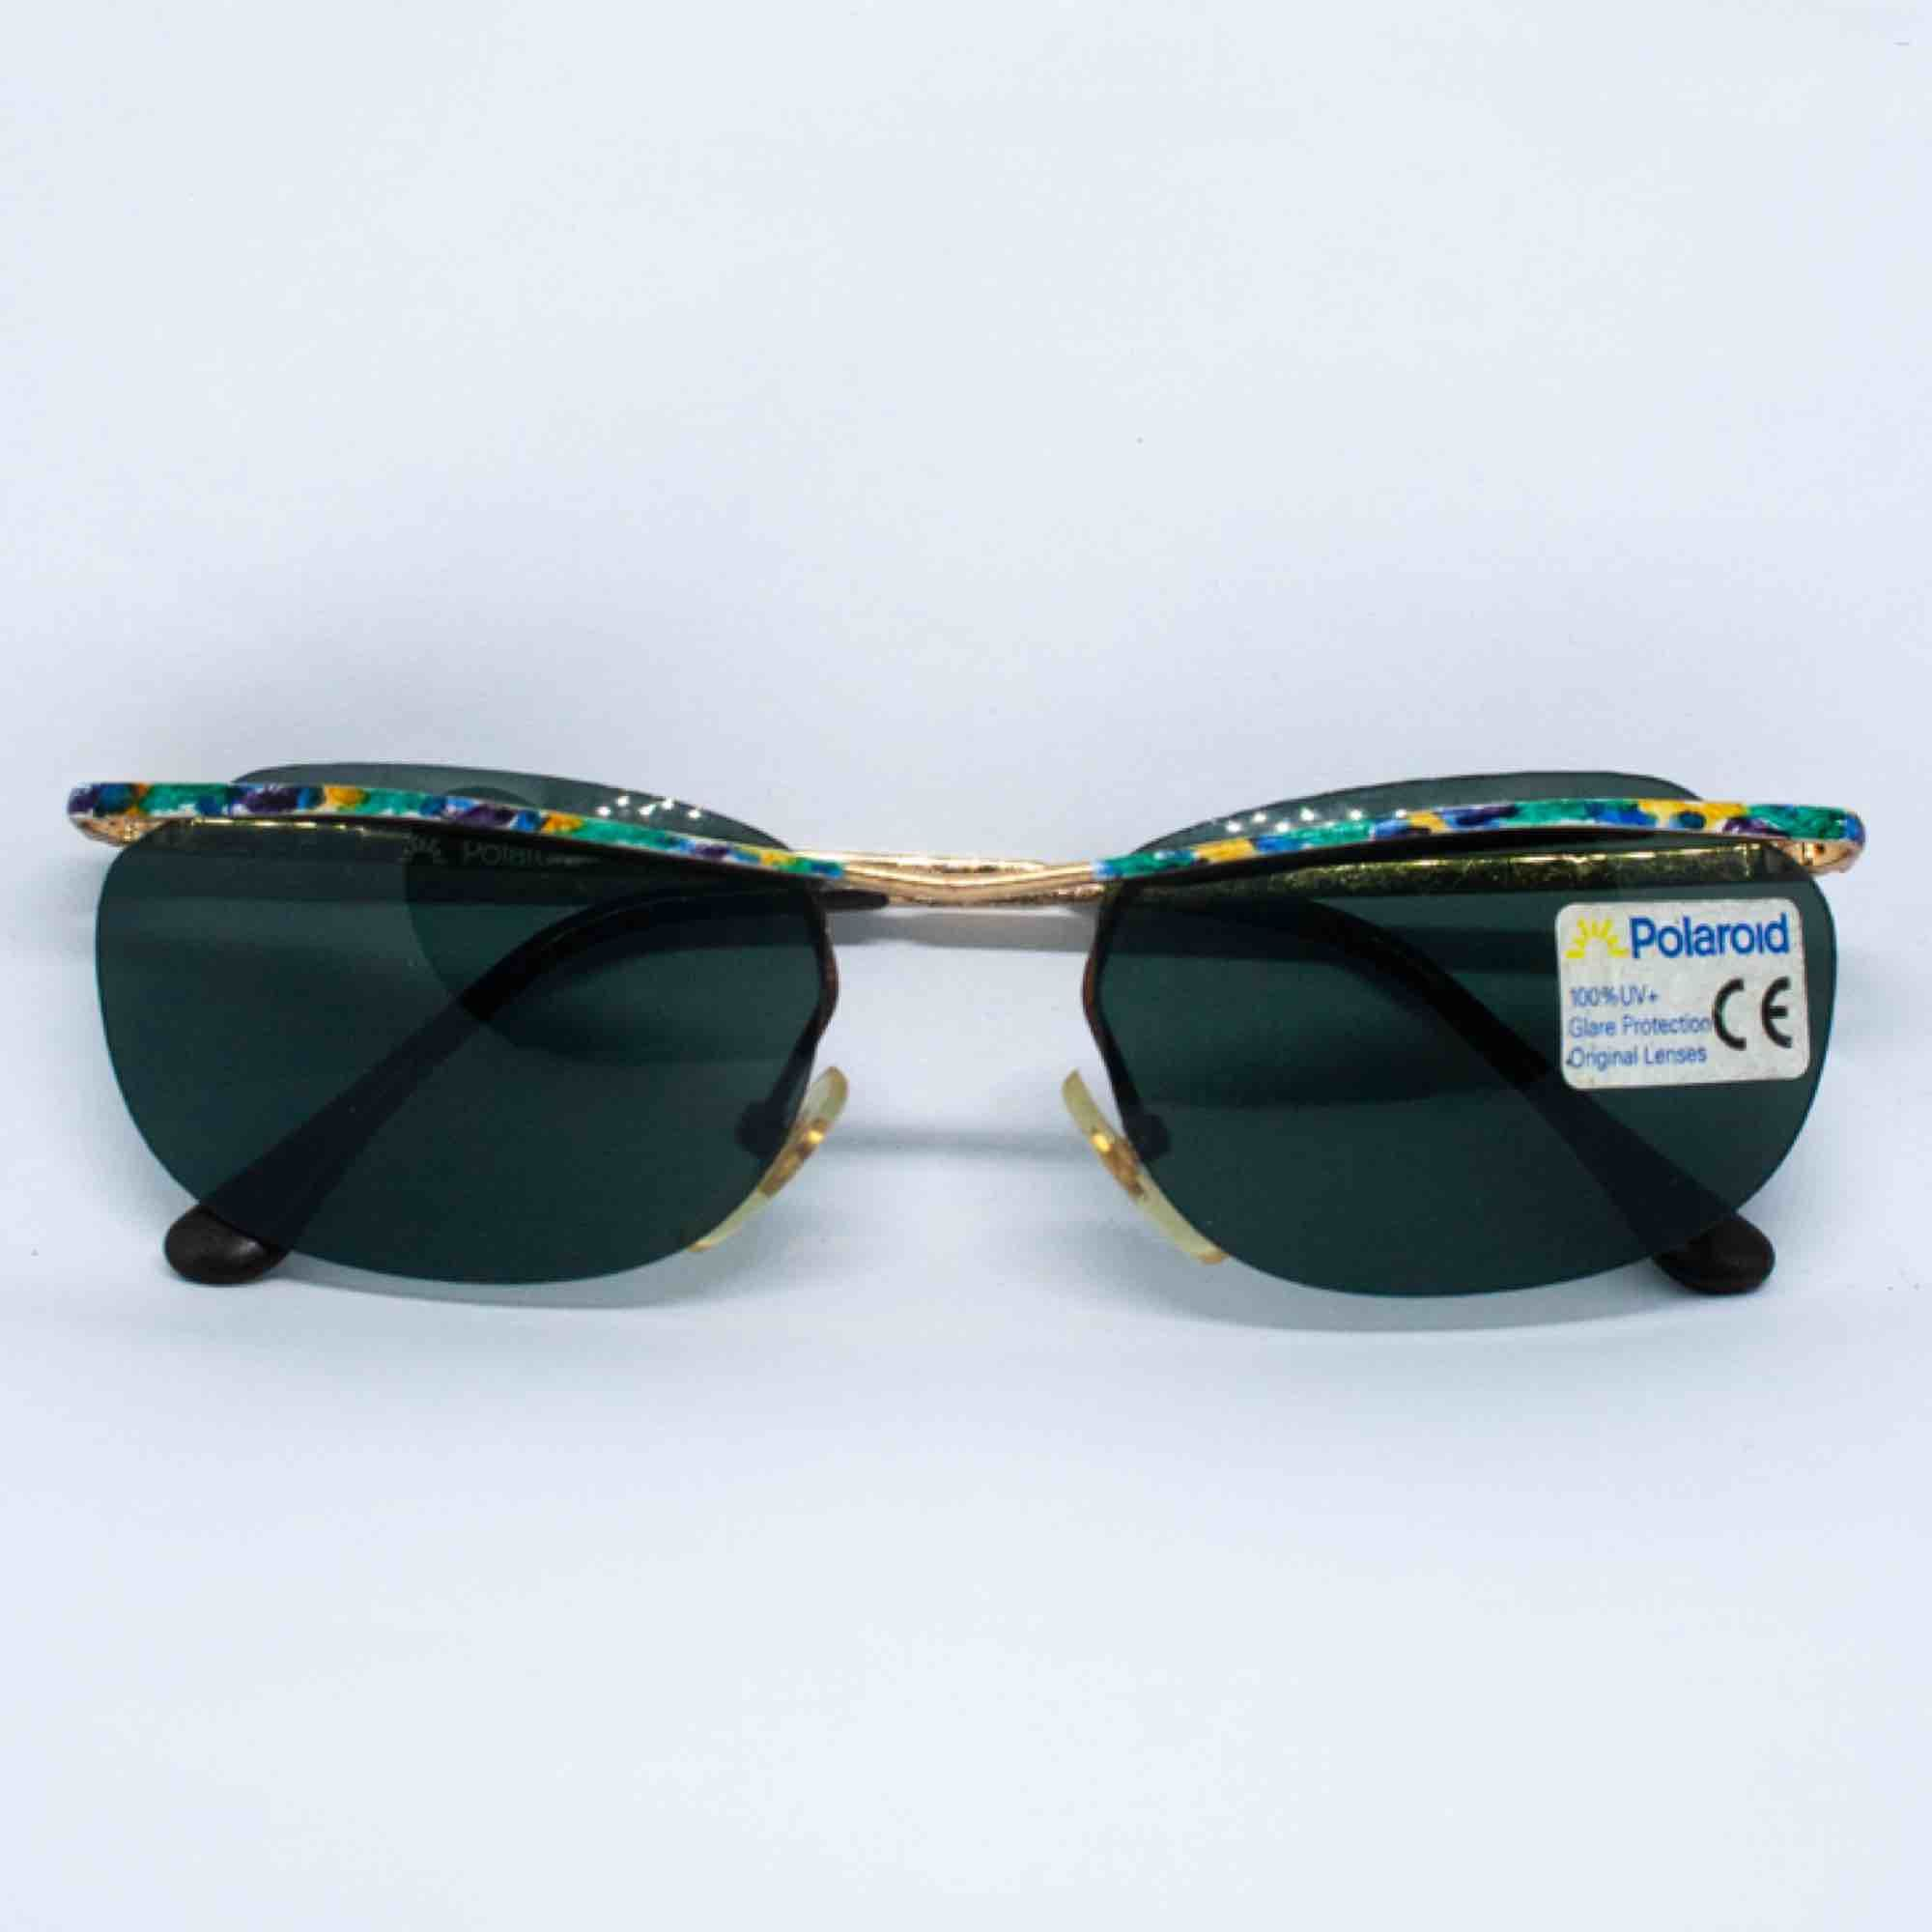 Vintage Y2K 90s 00s Polaroid cyber slim sunglasses in dark green and colorful frame 100% UV+ Barely visible sign of wear, if any Measurements: Frame: 13.5 cm width: 3.8 cm temple: 13 cm Free shipping. Accessoarer.